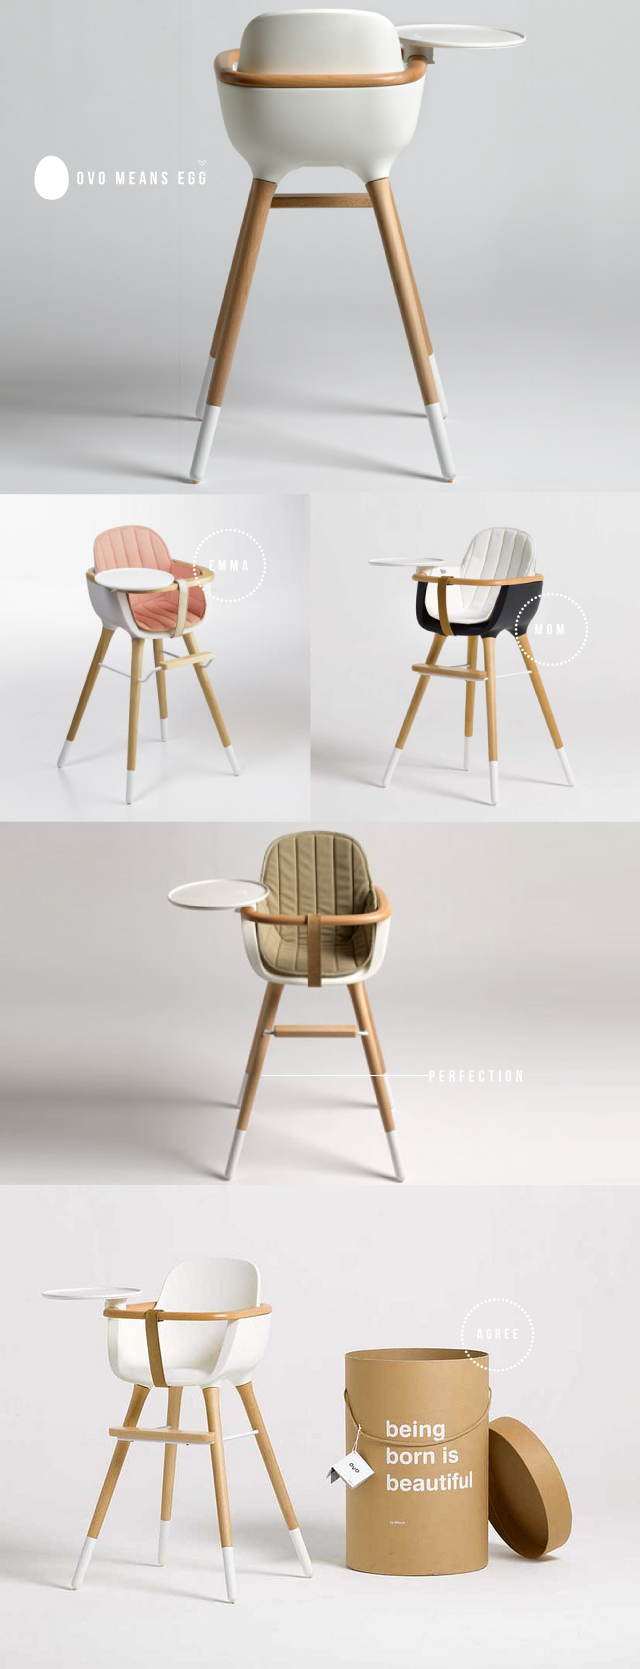 modern chair design inspiration ()  high chairs bebe and baby  - modern chair design inspiration ()